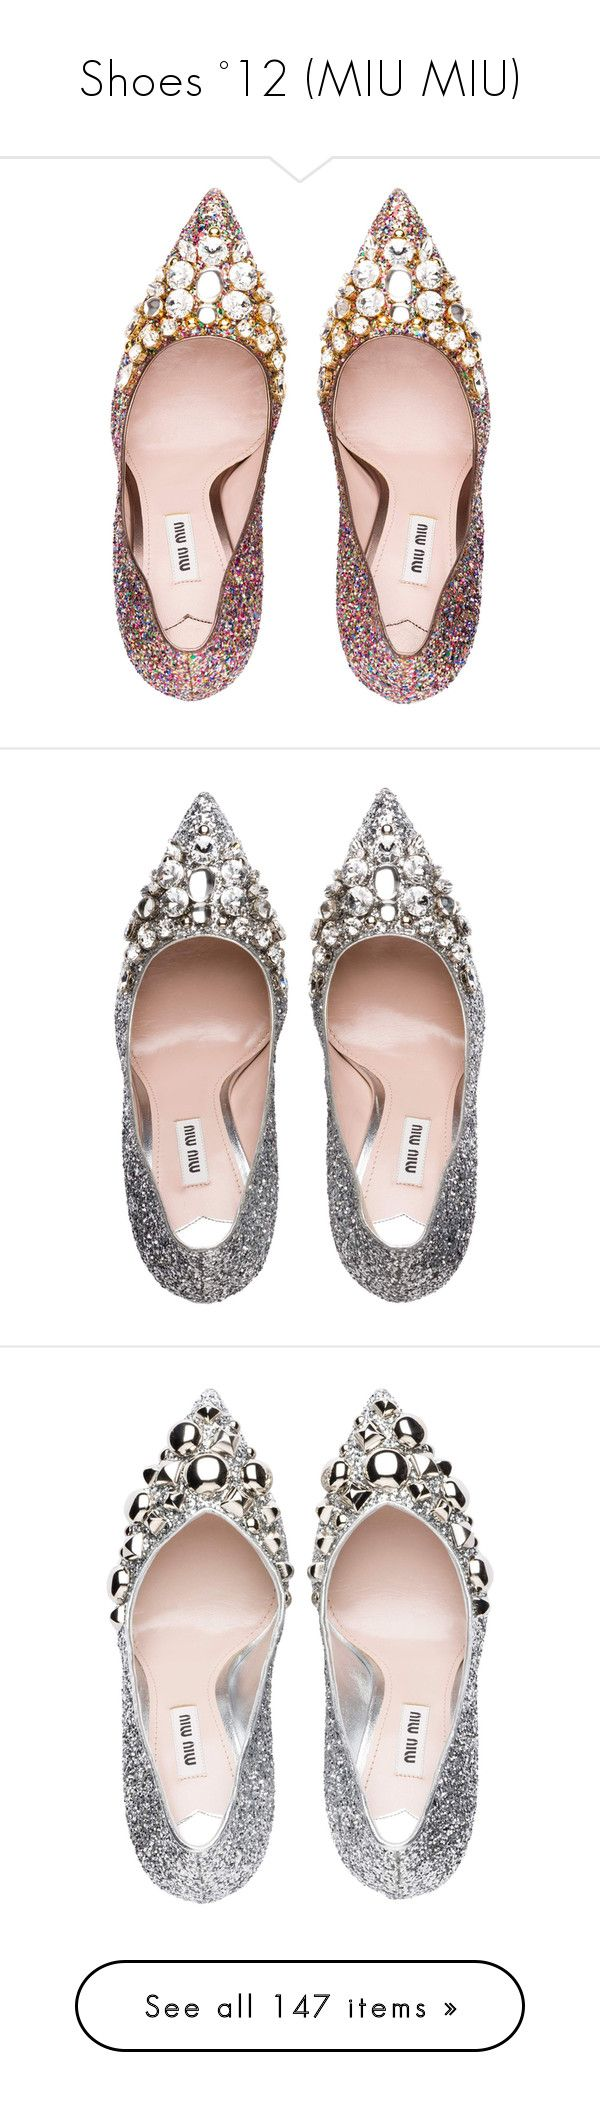 """""""Shoes °12 (MIU MIU)"""" by monazor ❤ liked on Polyvore featuring shoes, pumps, decorating shoes, swarovski crystal shoes, miu miu pumps, glitter high heel pumps, glitter high heel shoes, heels, high heel shoes and glitter heel shoes"""